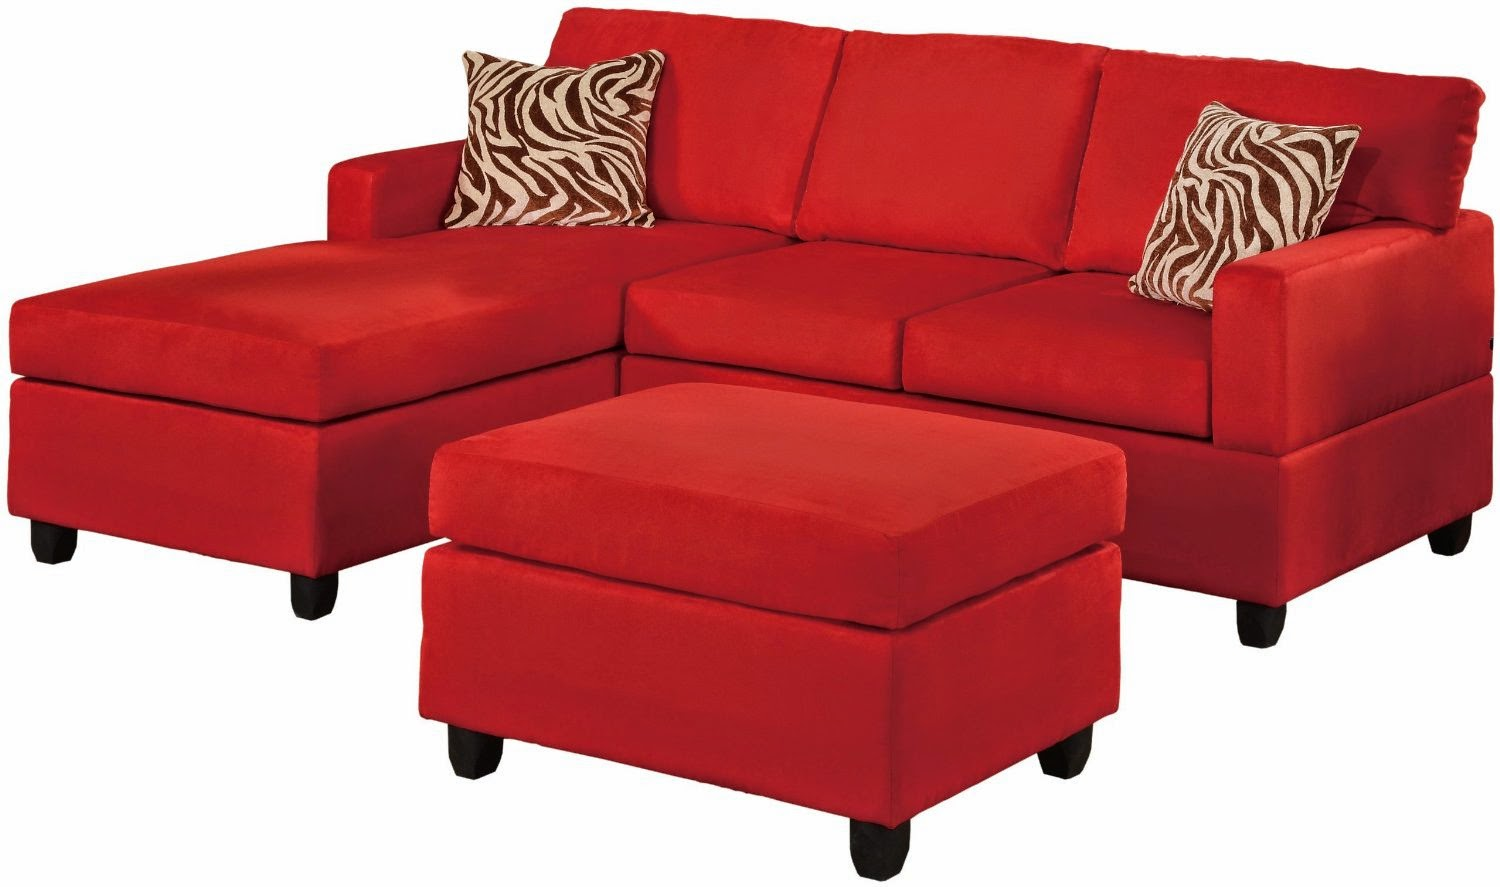 Red couch for Couch sofa set